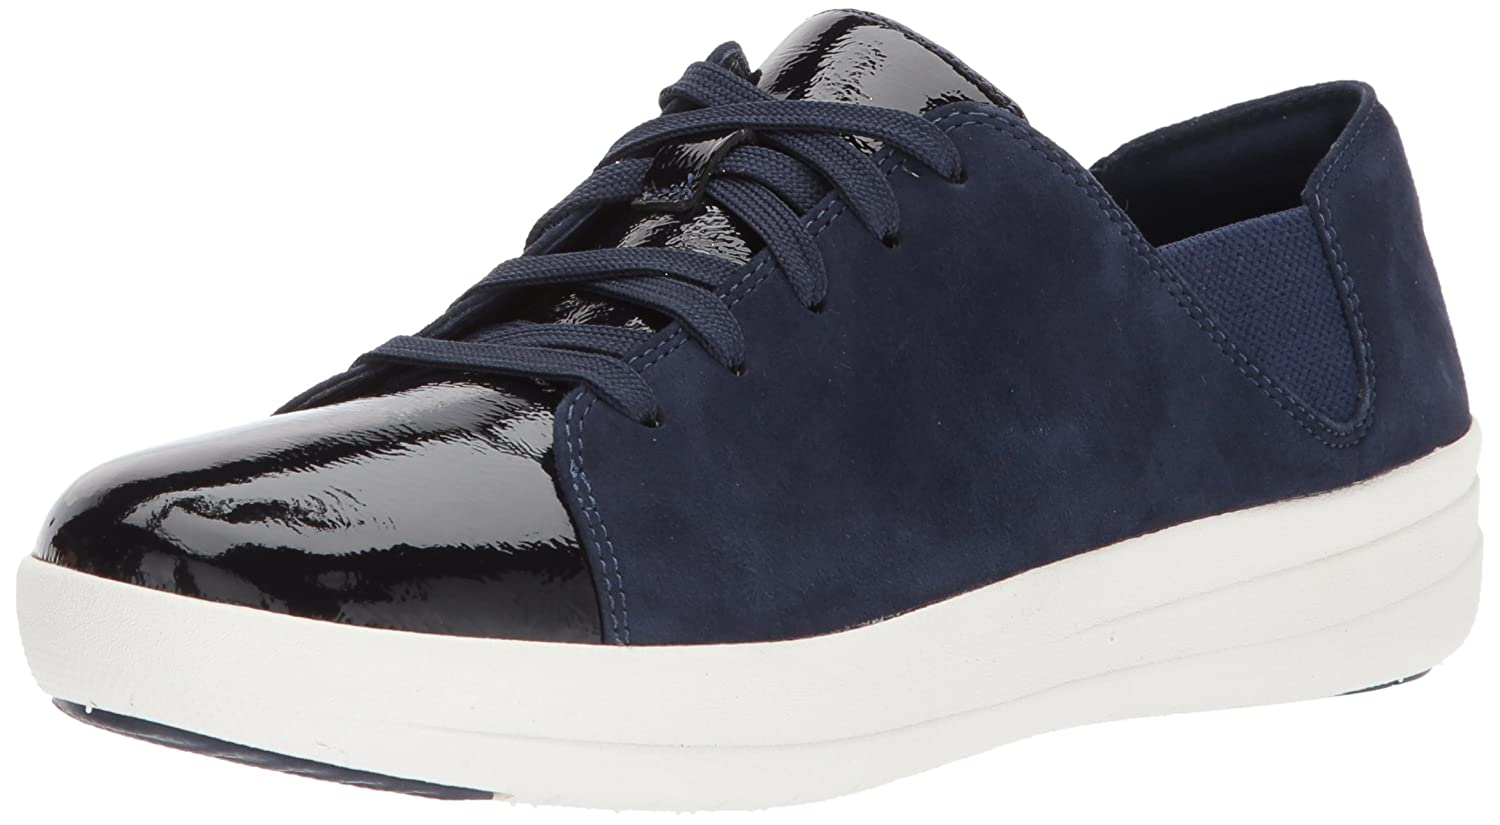 FitFlop Women's F-Sporty Lace-up Sneaker B07114HS9T 6 B(M) US|Midnight Navy Mix